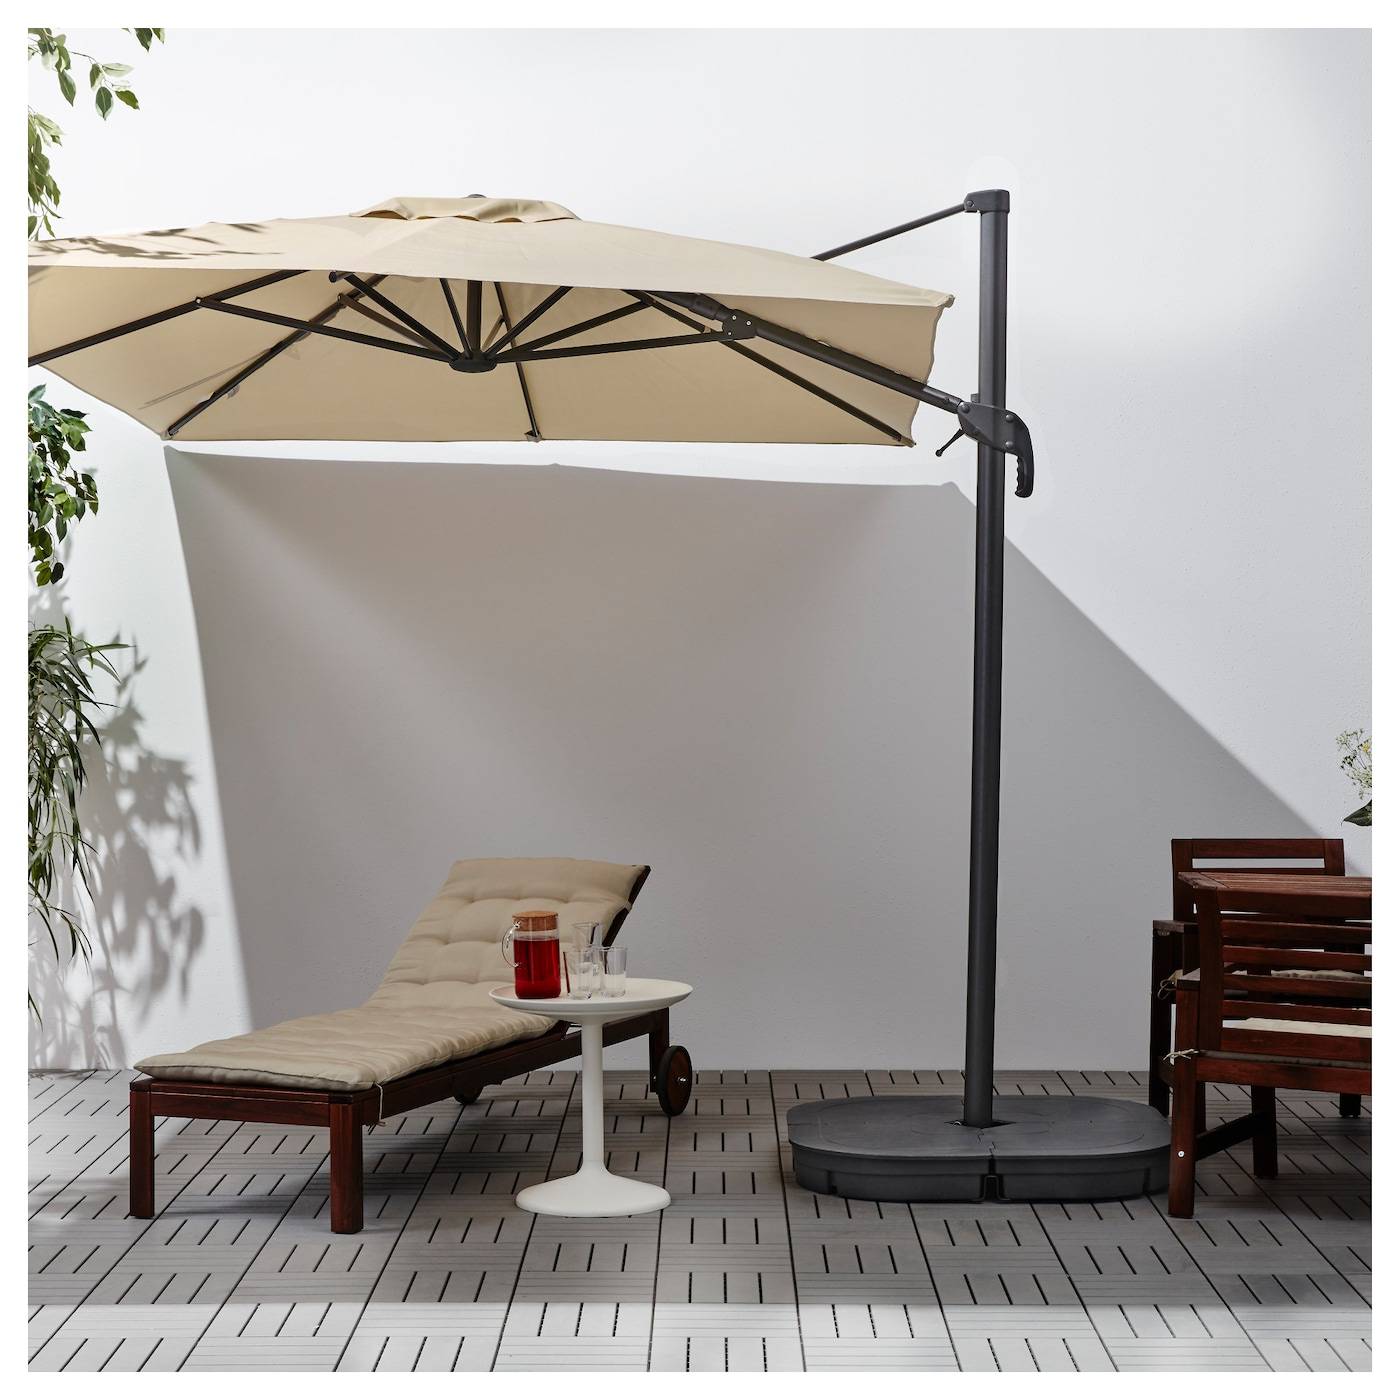 IKEA SEGLARÖ parasol, hanging The air vent reduces wind pressure and allows heat to circulate.